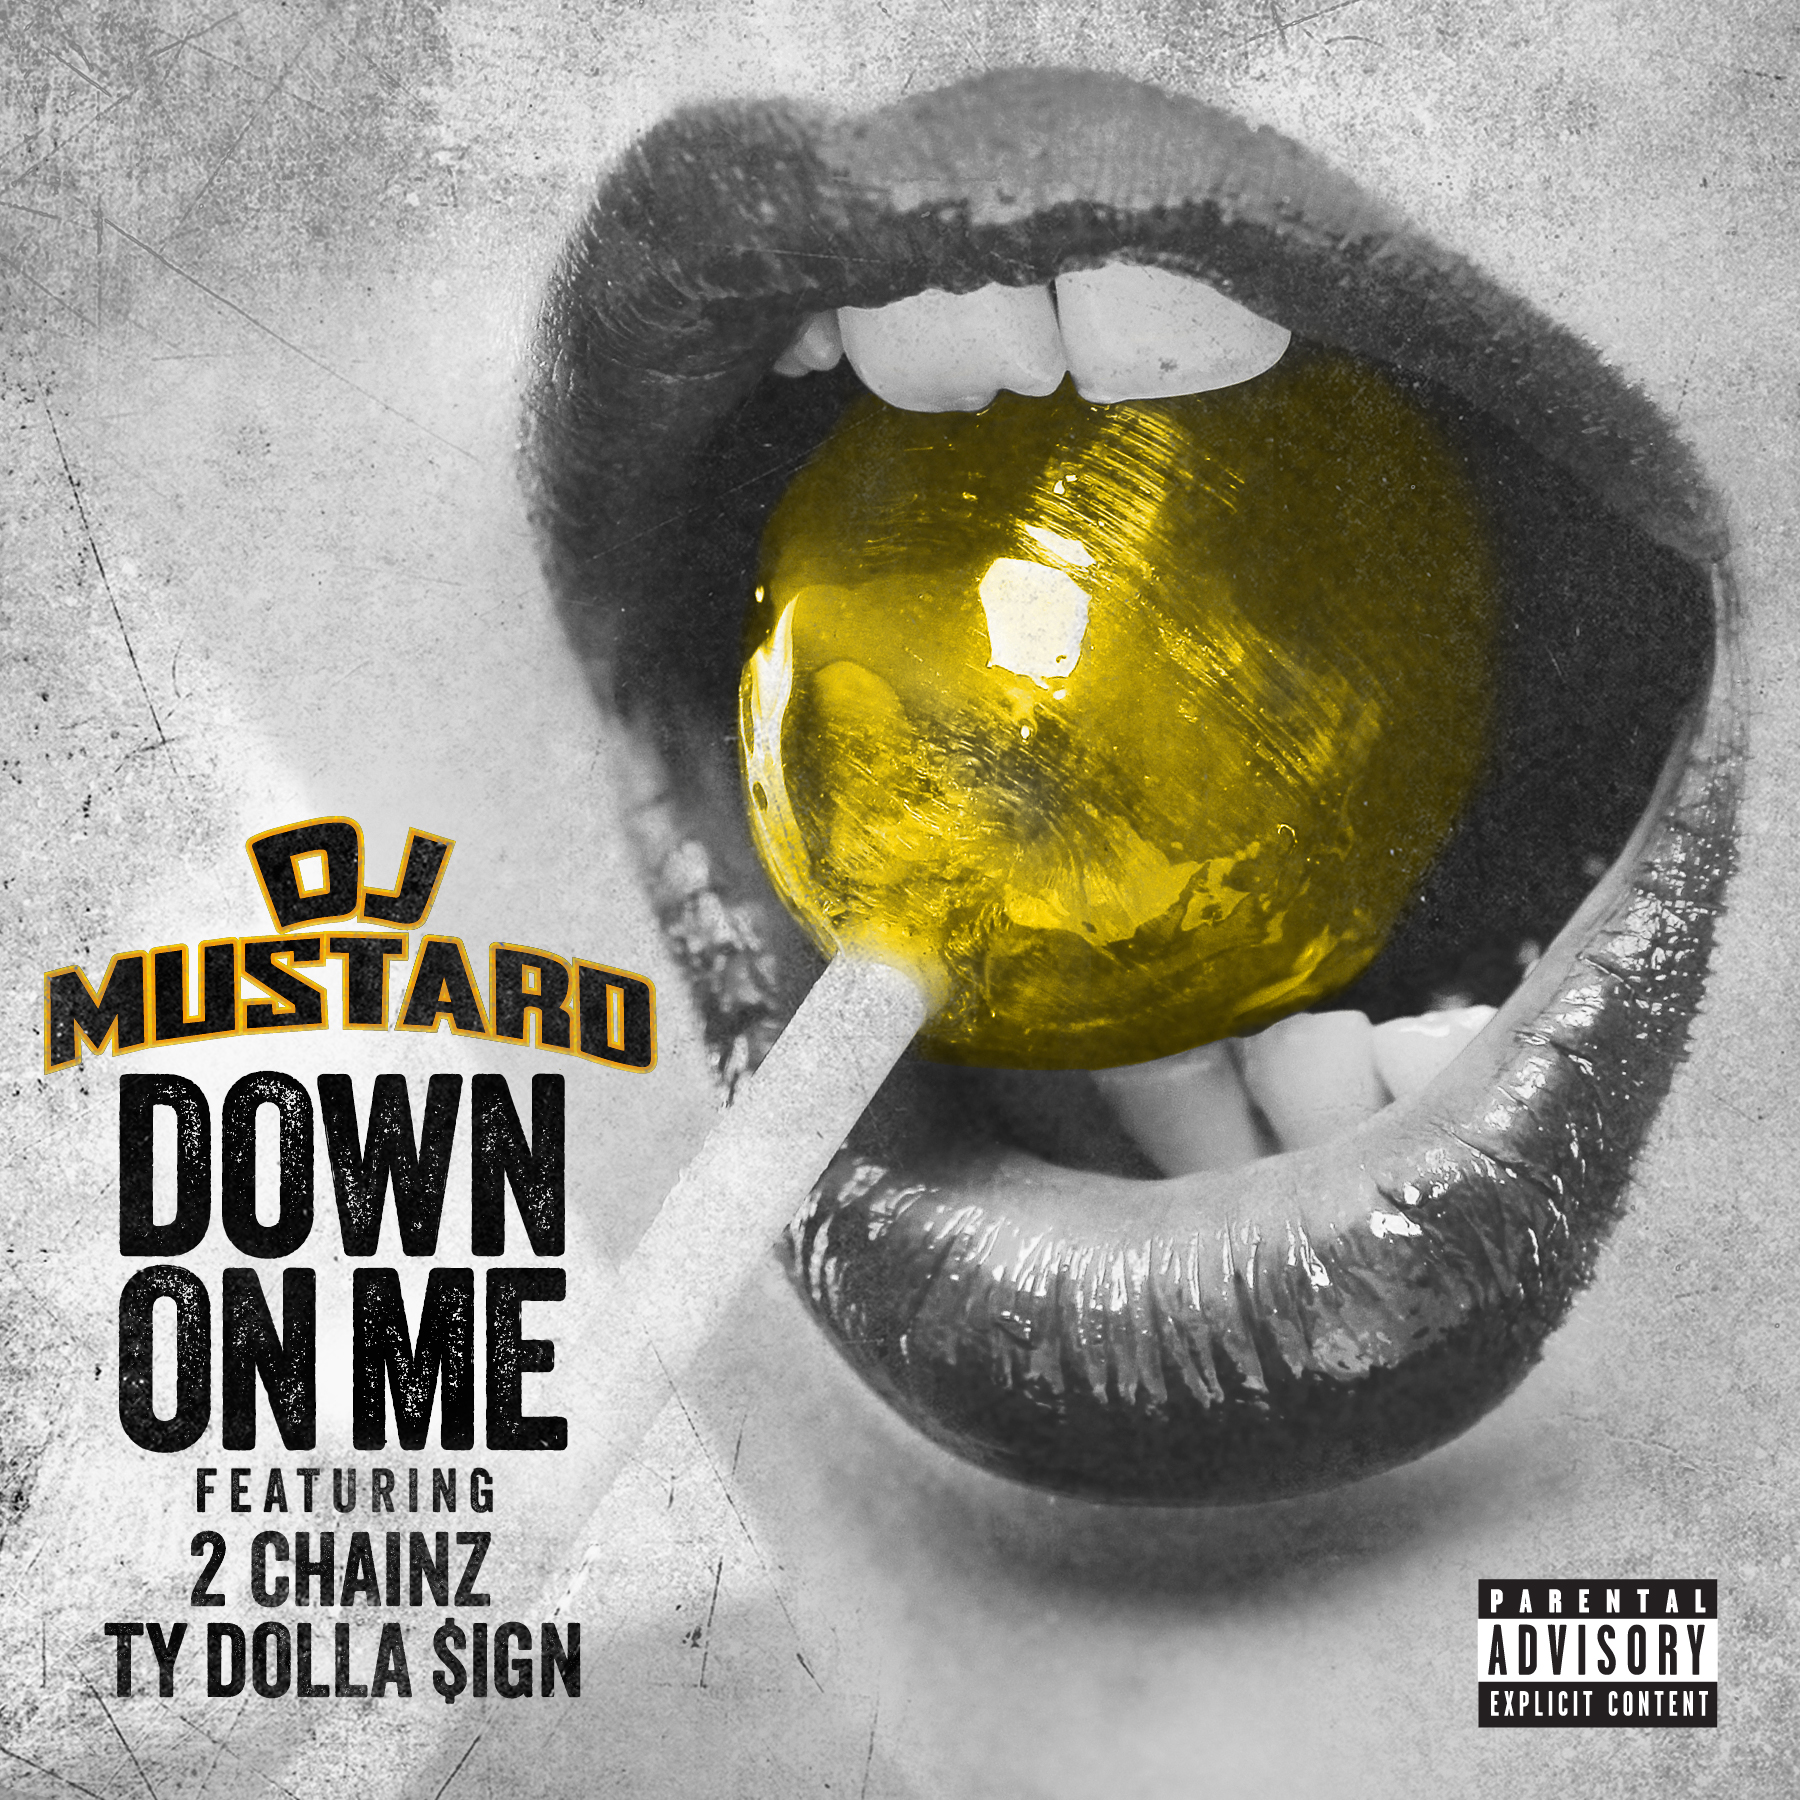 """DJ Mustard – """"Down On Me"""" (Feat. Ty Dolla $ign & 2 Chainz)"""